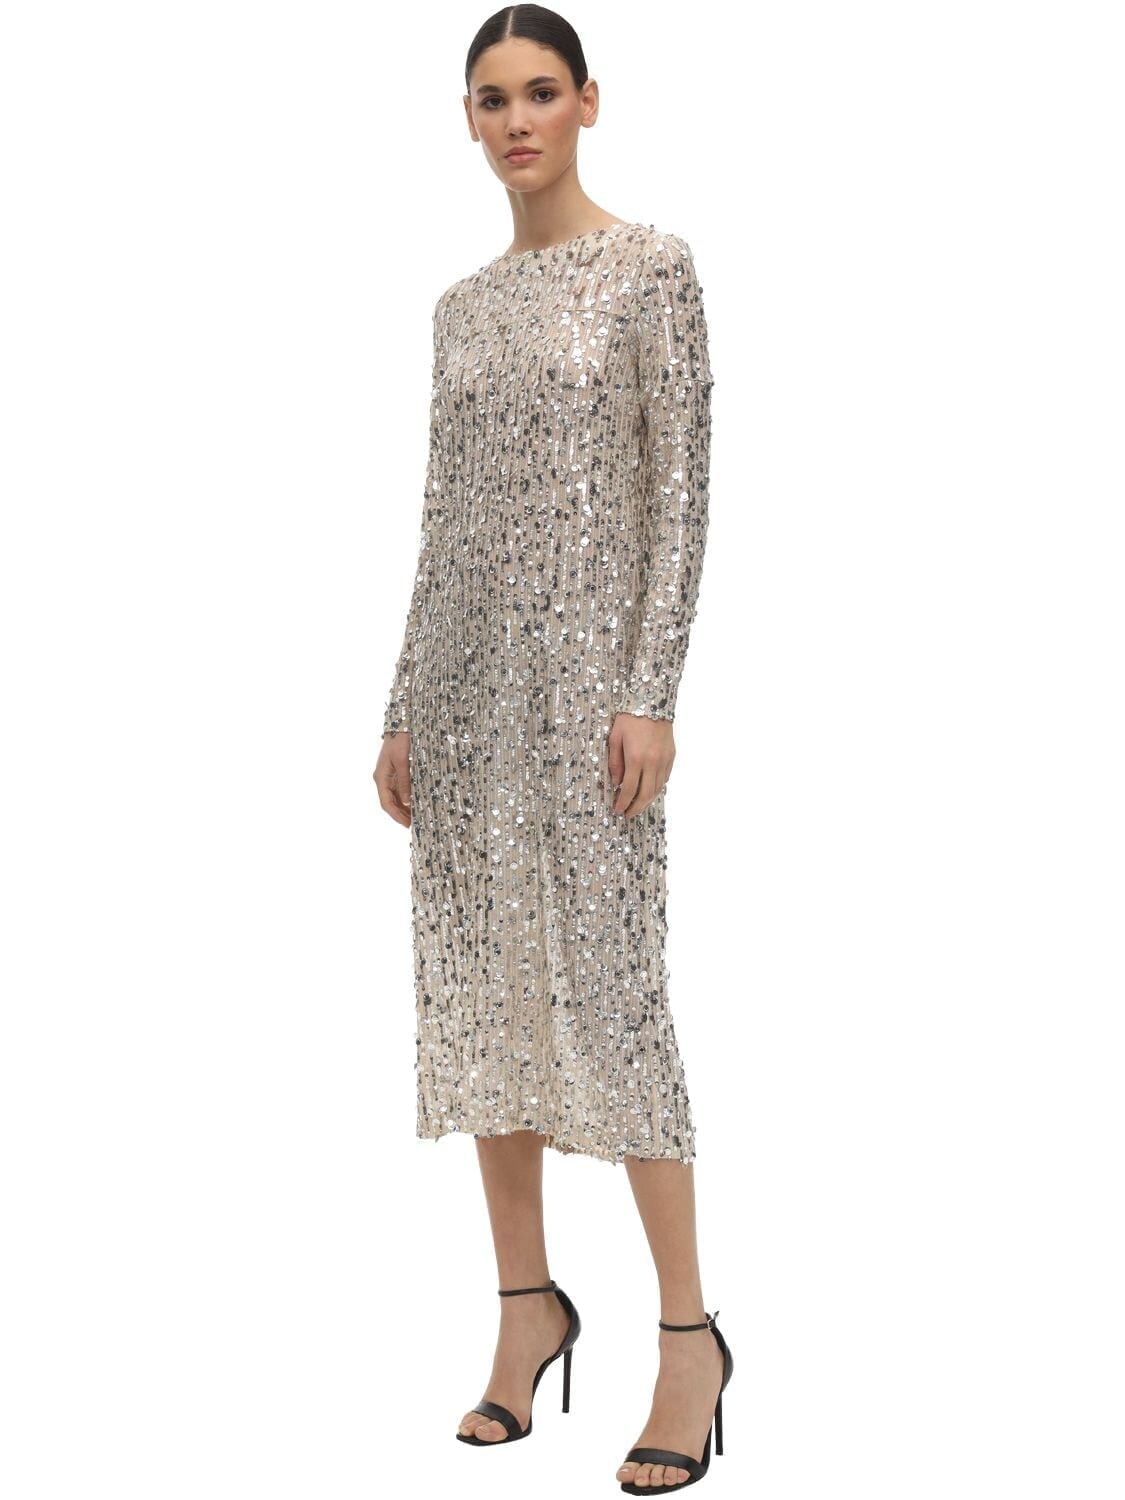 IN THE MOOD FOR LOVE Sequined Round Neck Midi Dress